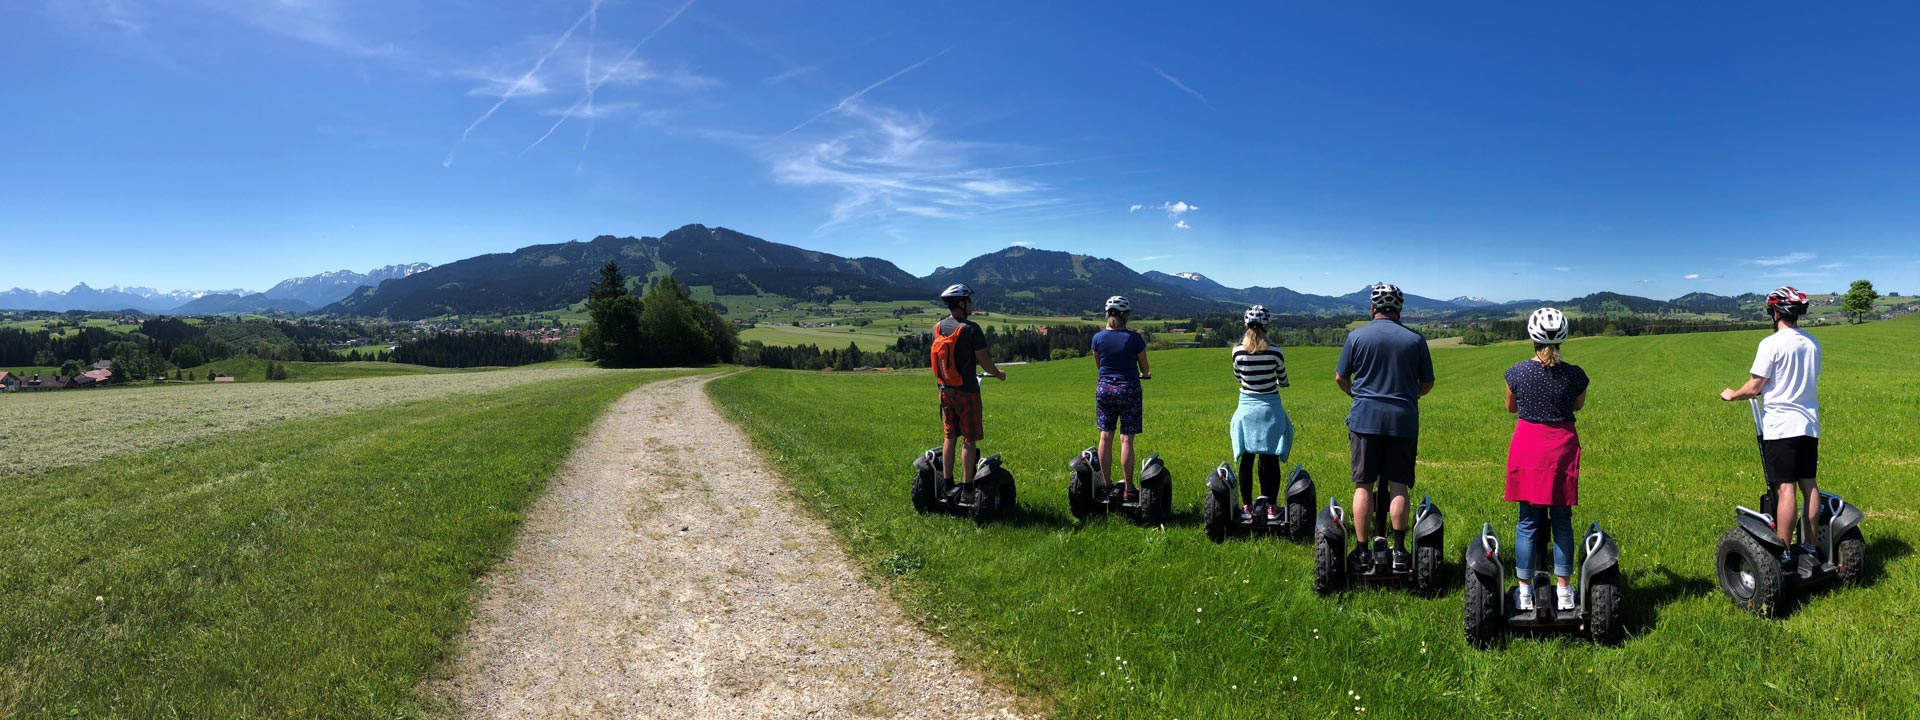 Segway Tour in Nesselwang im Allgäu, © Patrick Jonas - Perfect Joy